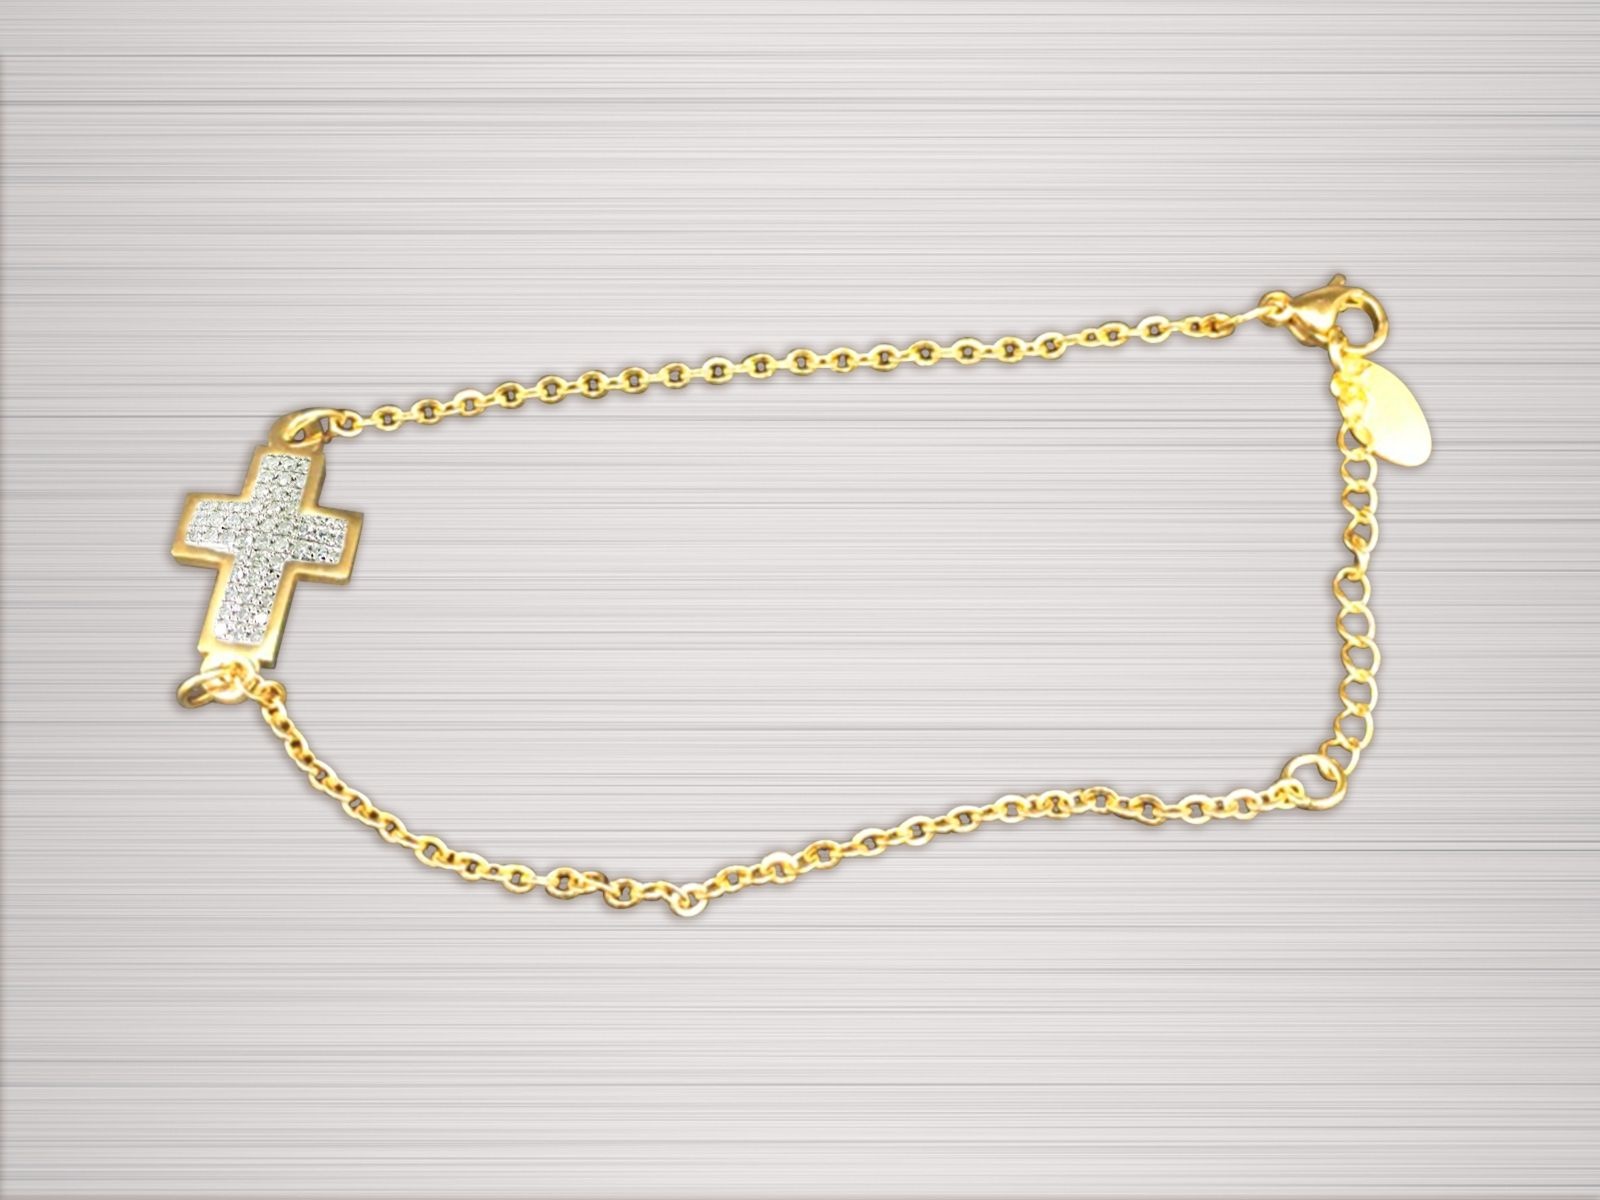 Women's Cross Chain Bracelet Gold and White Cross with Stones